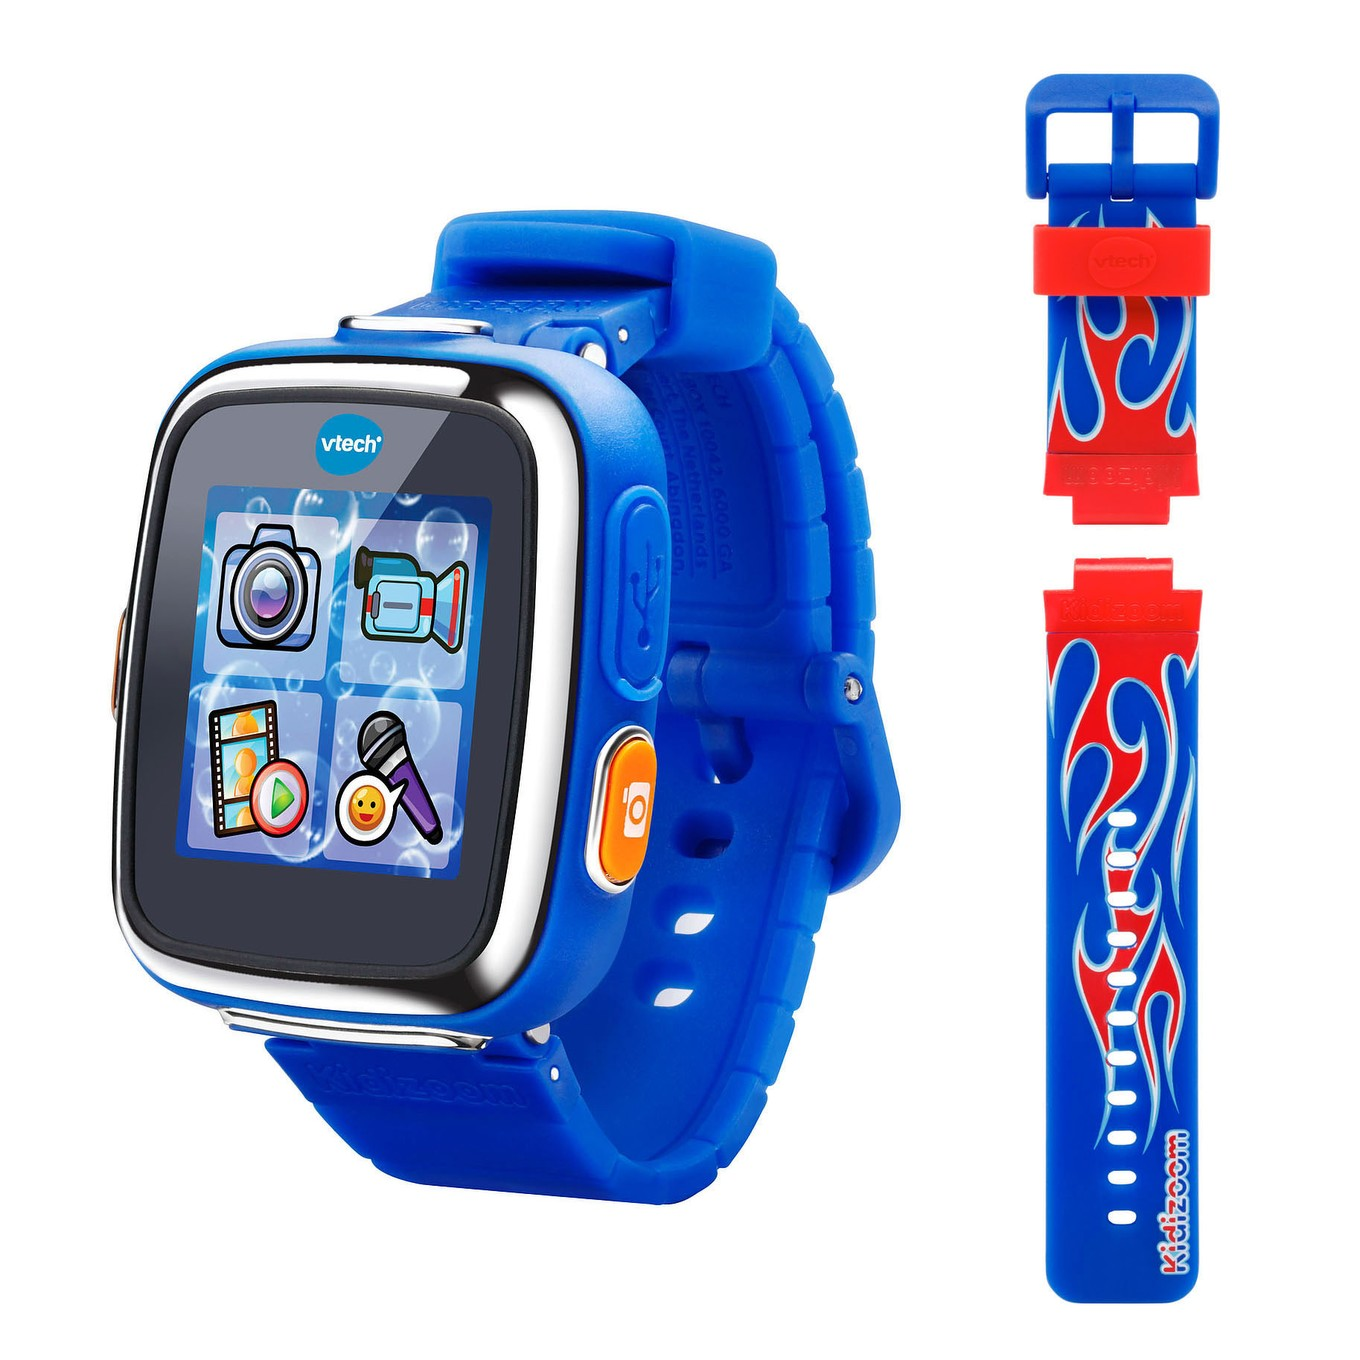 A super fun and educational fitness tracker watch for kids